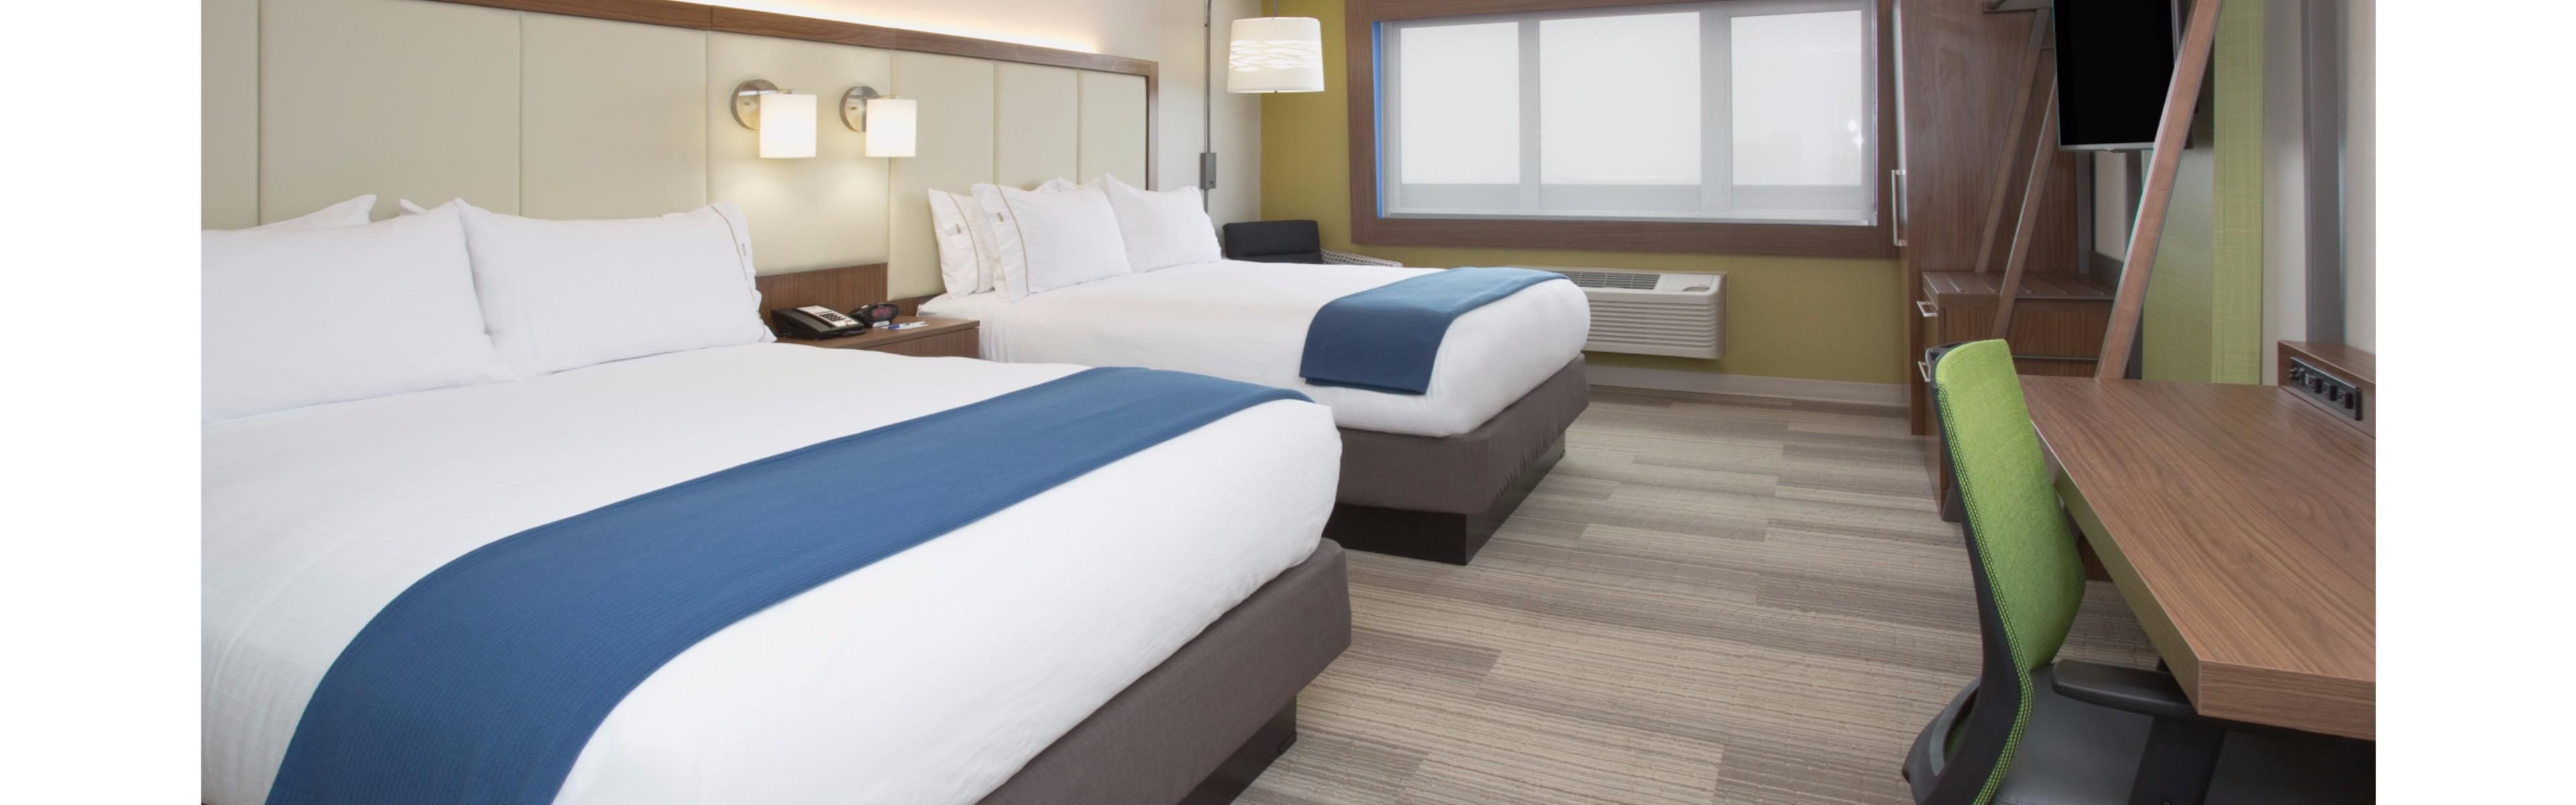 Holiday Inn Express & Suites Perryville I-55 image 1